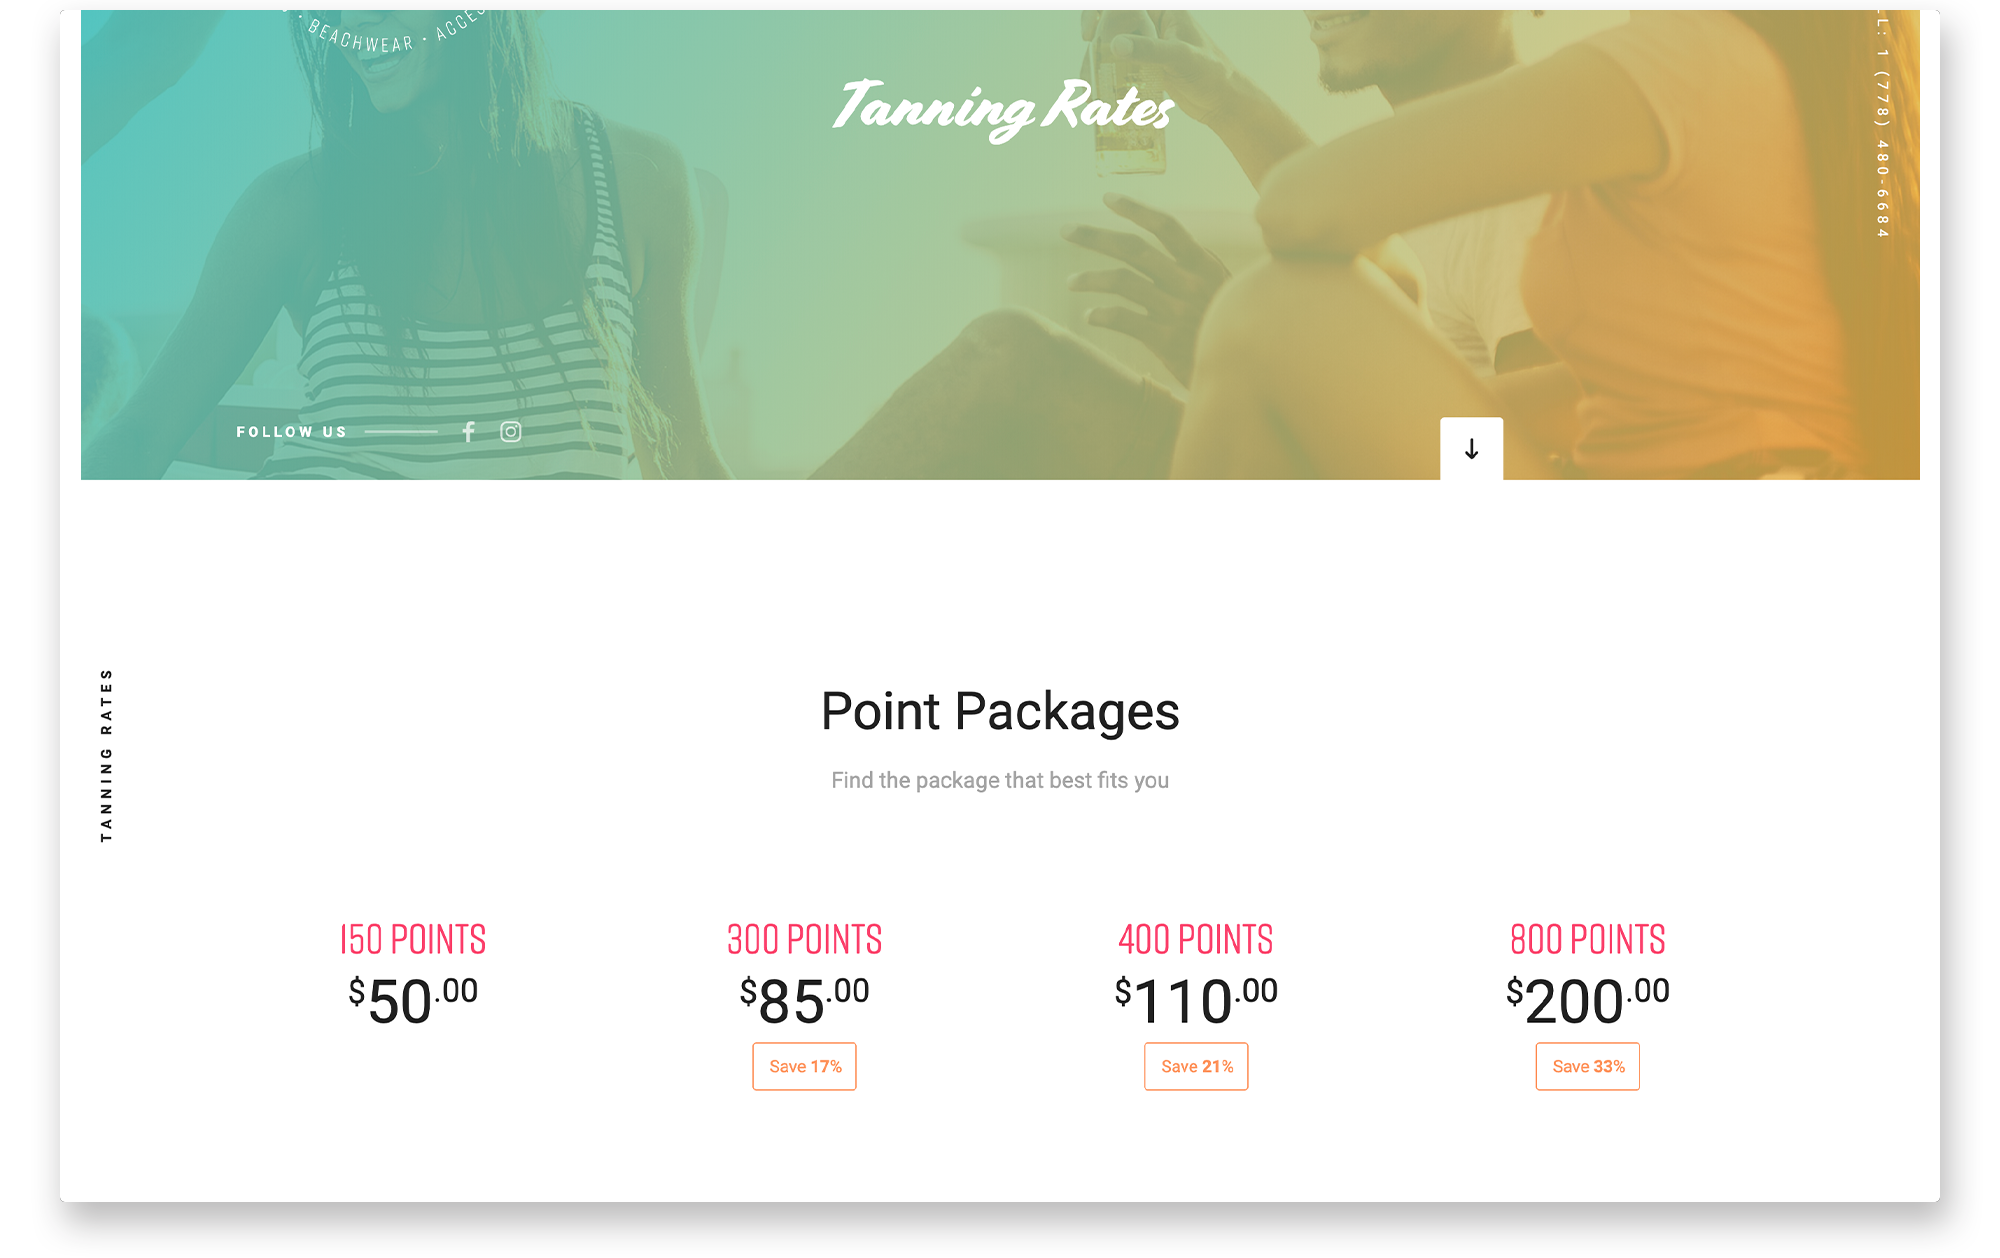 Desktop view of pricing page for Beyond the Beach.